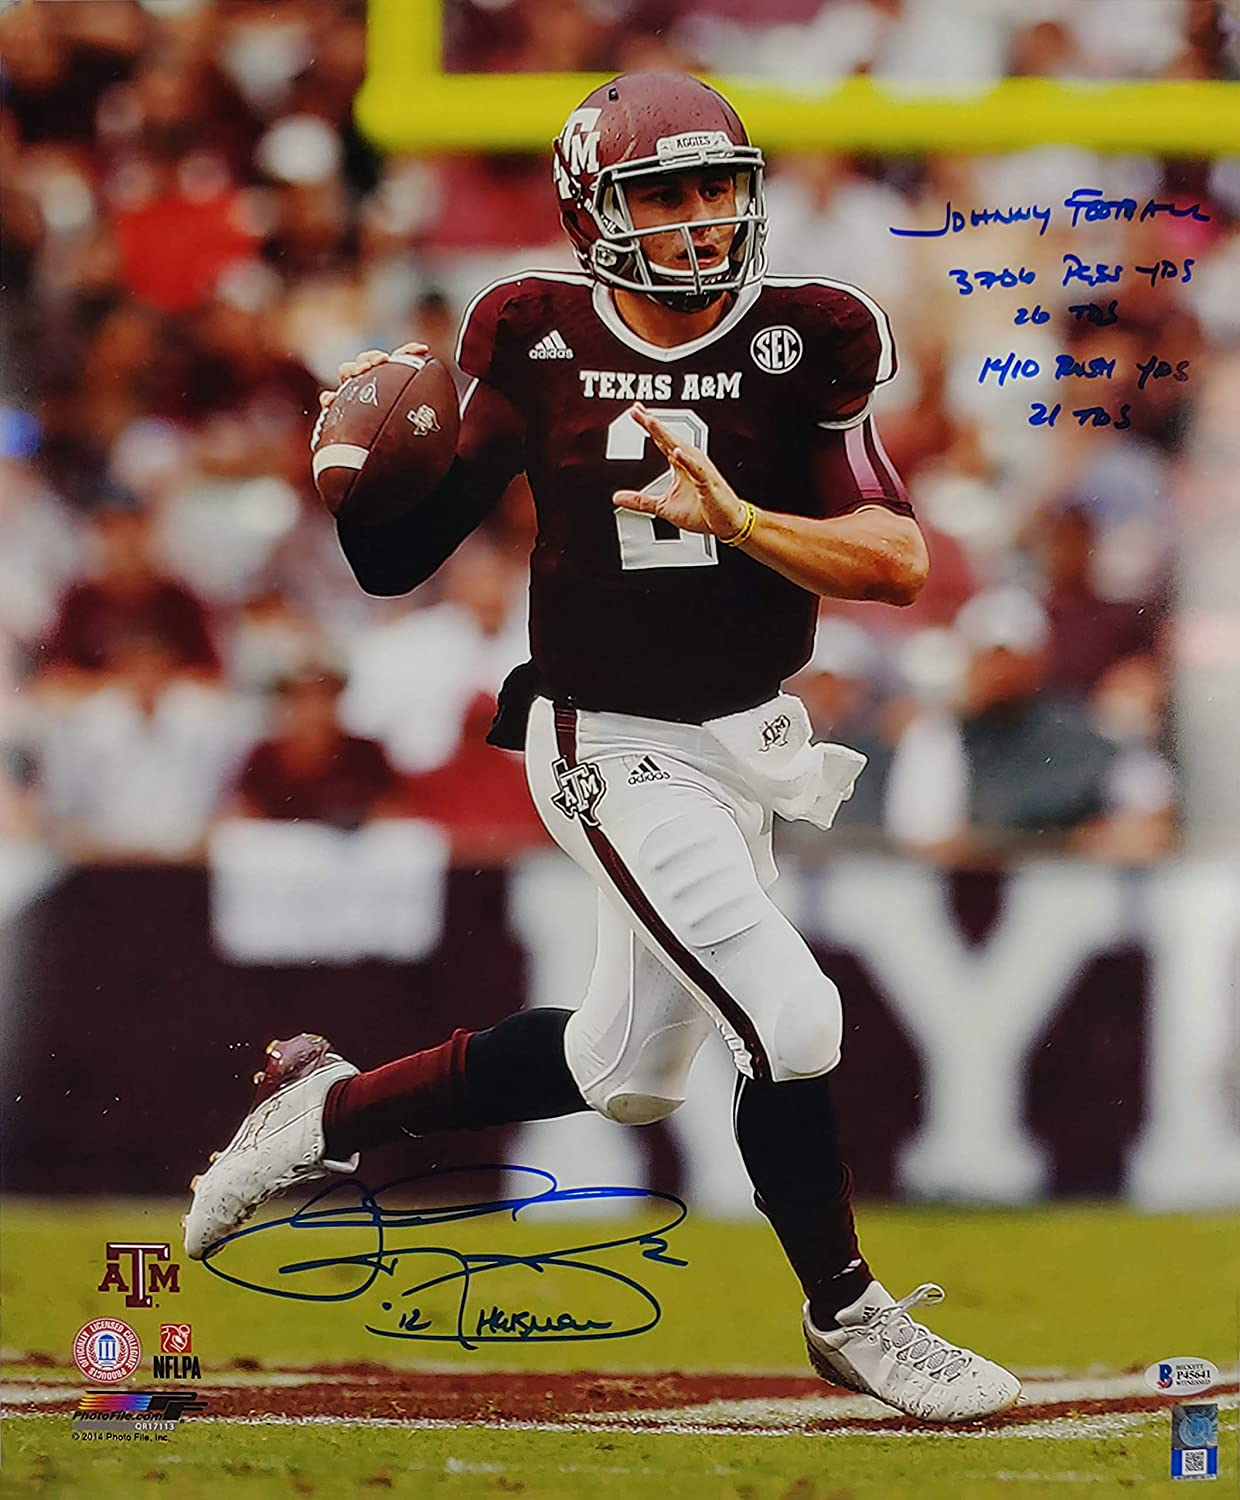 Texas A&M Johnny Manziel